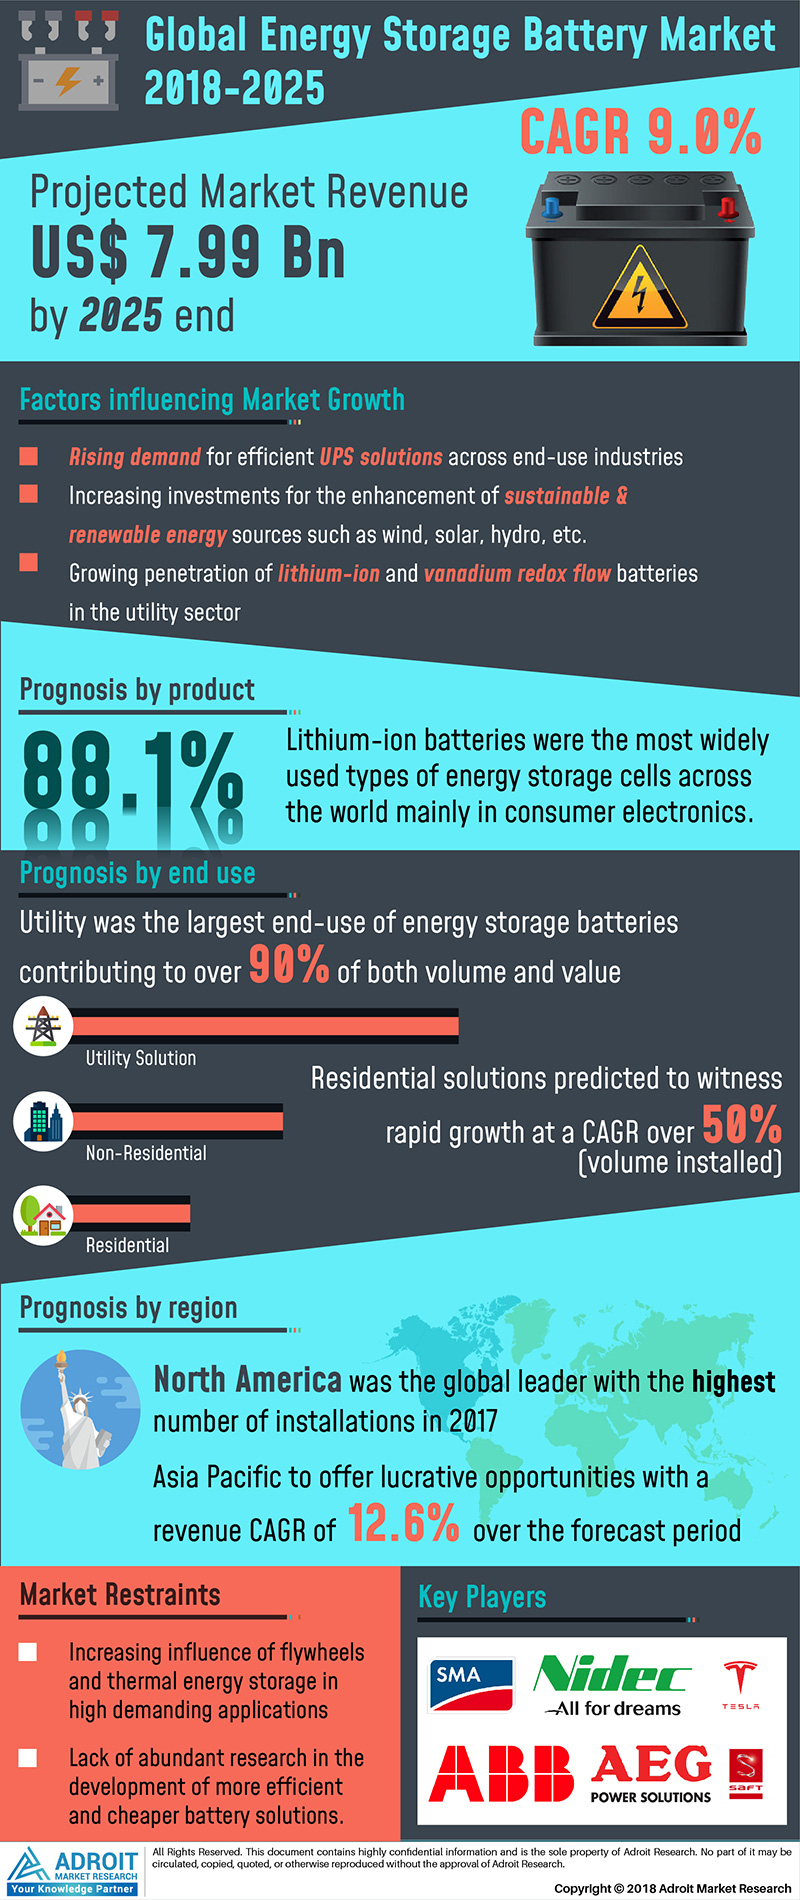 Global Energy Storage Battery Market Analysis by Types, Applications, Regions and 2025 Forecast